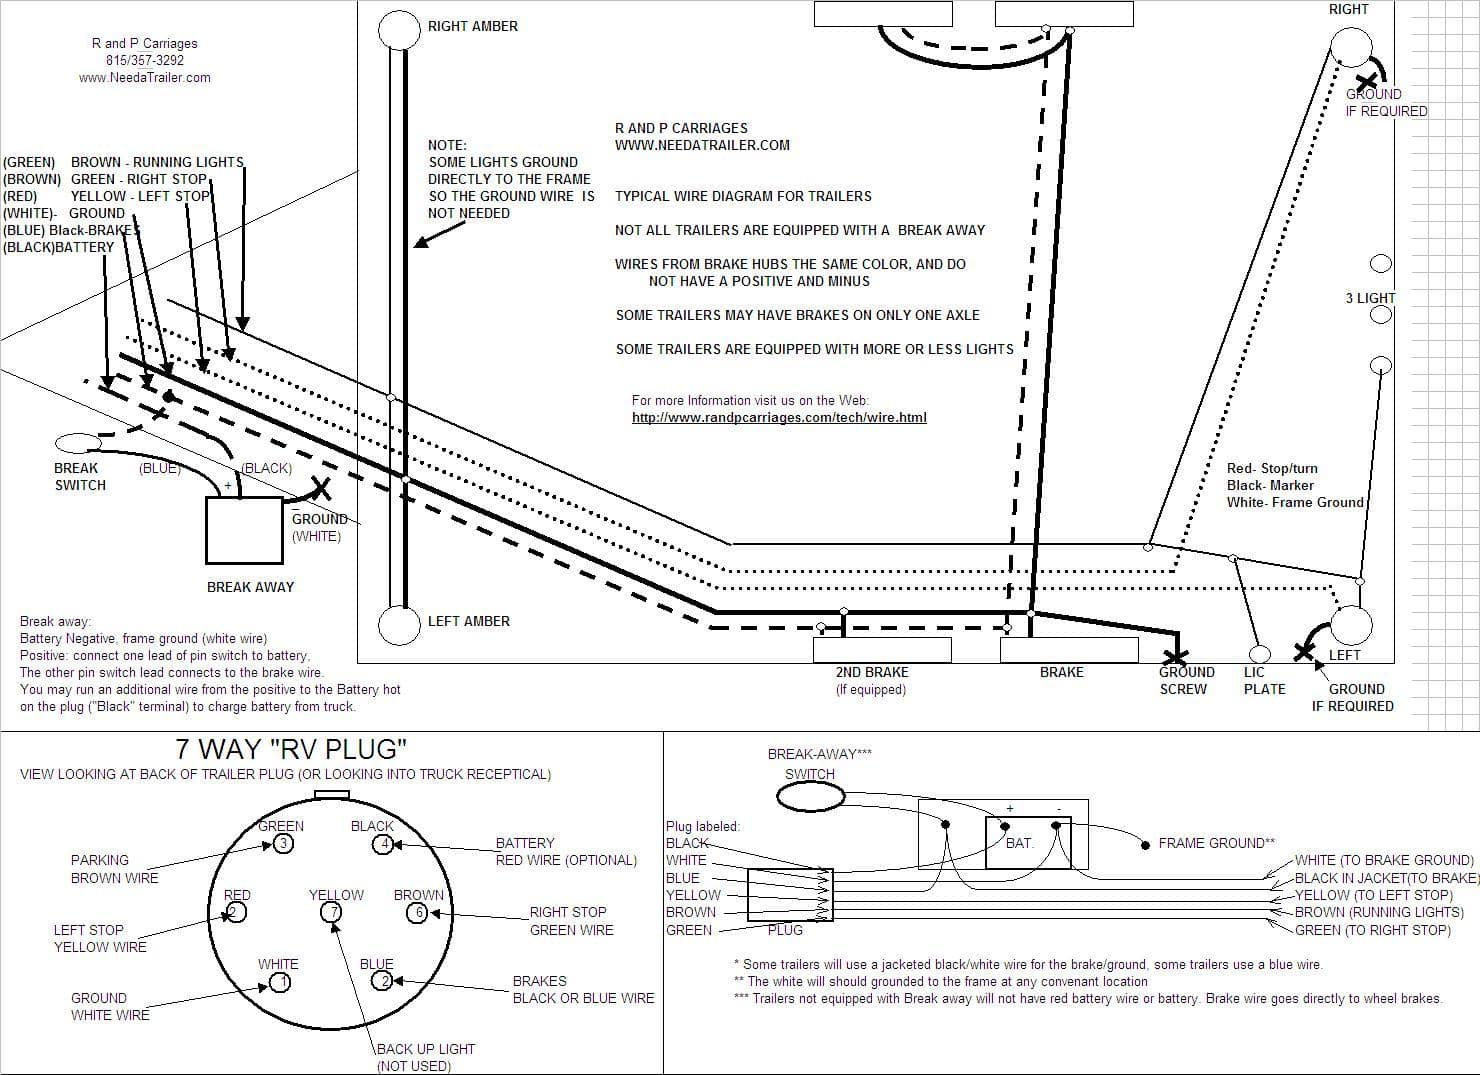 7 Way Plug Information | R And P Carriages | Cargo, Utility, Dump - Wiring Diagram For Trailer Plug On Truck